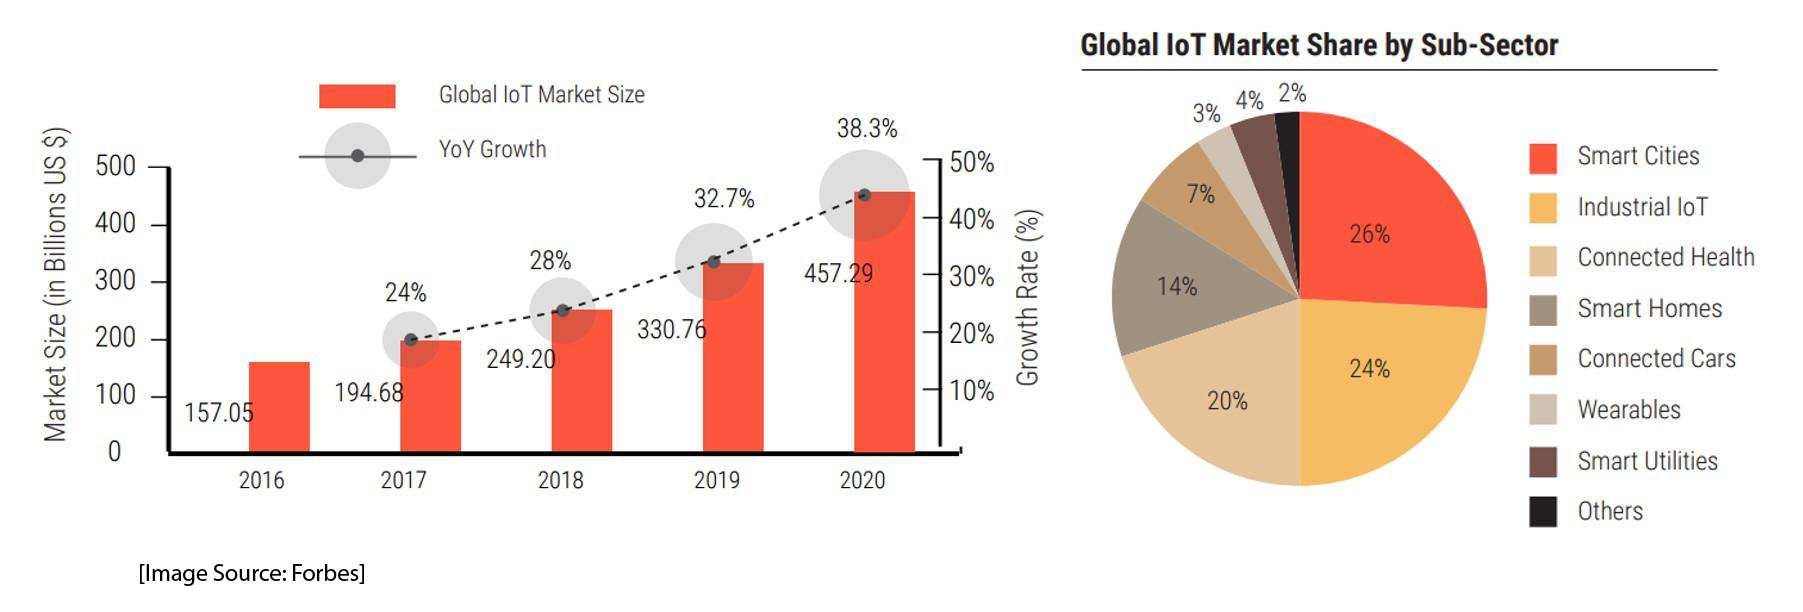 Global IoT market share